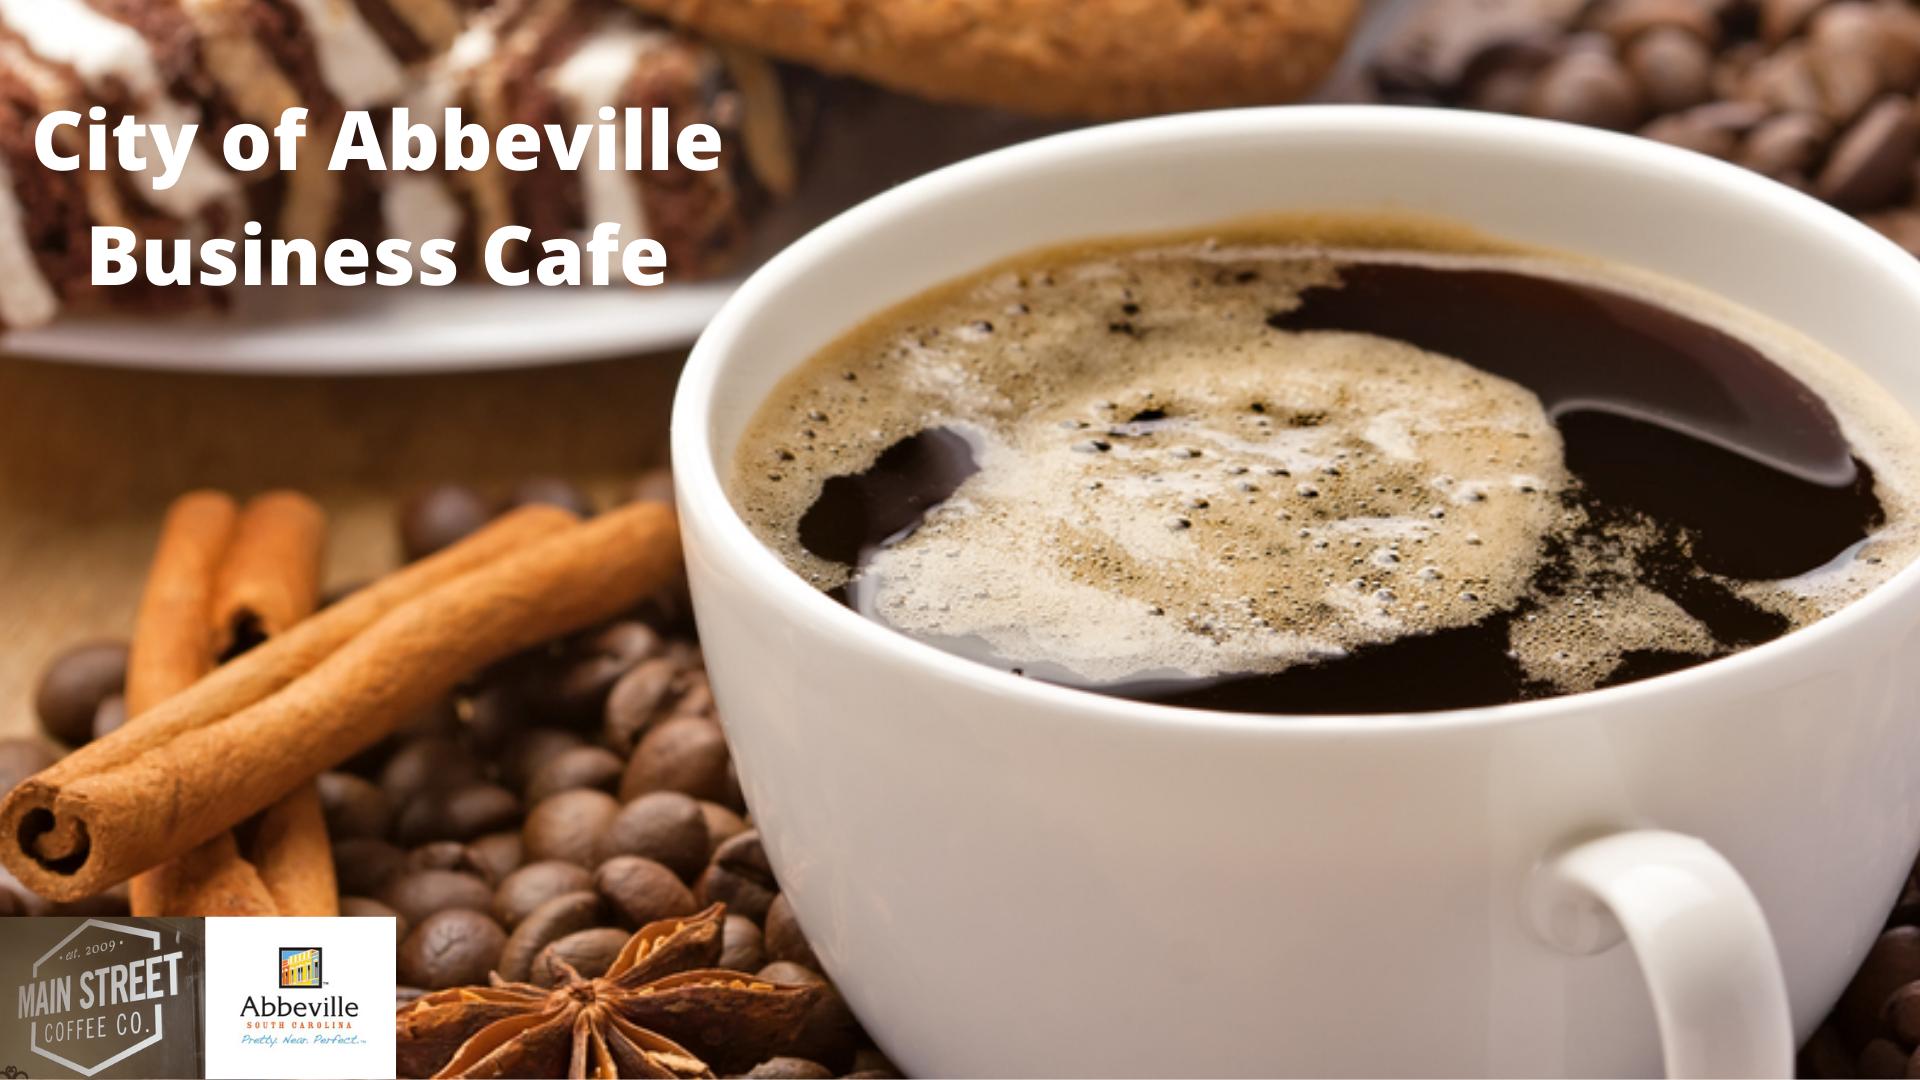 City of Abbeville Business Cafe